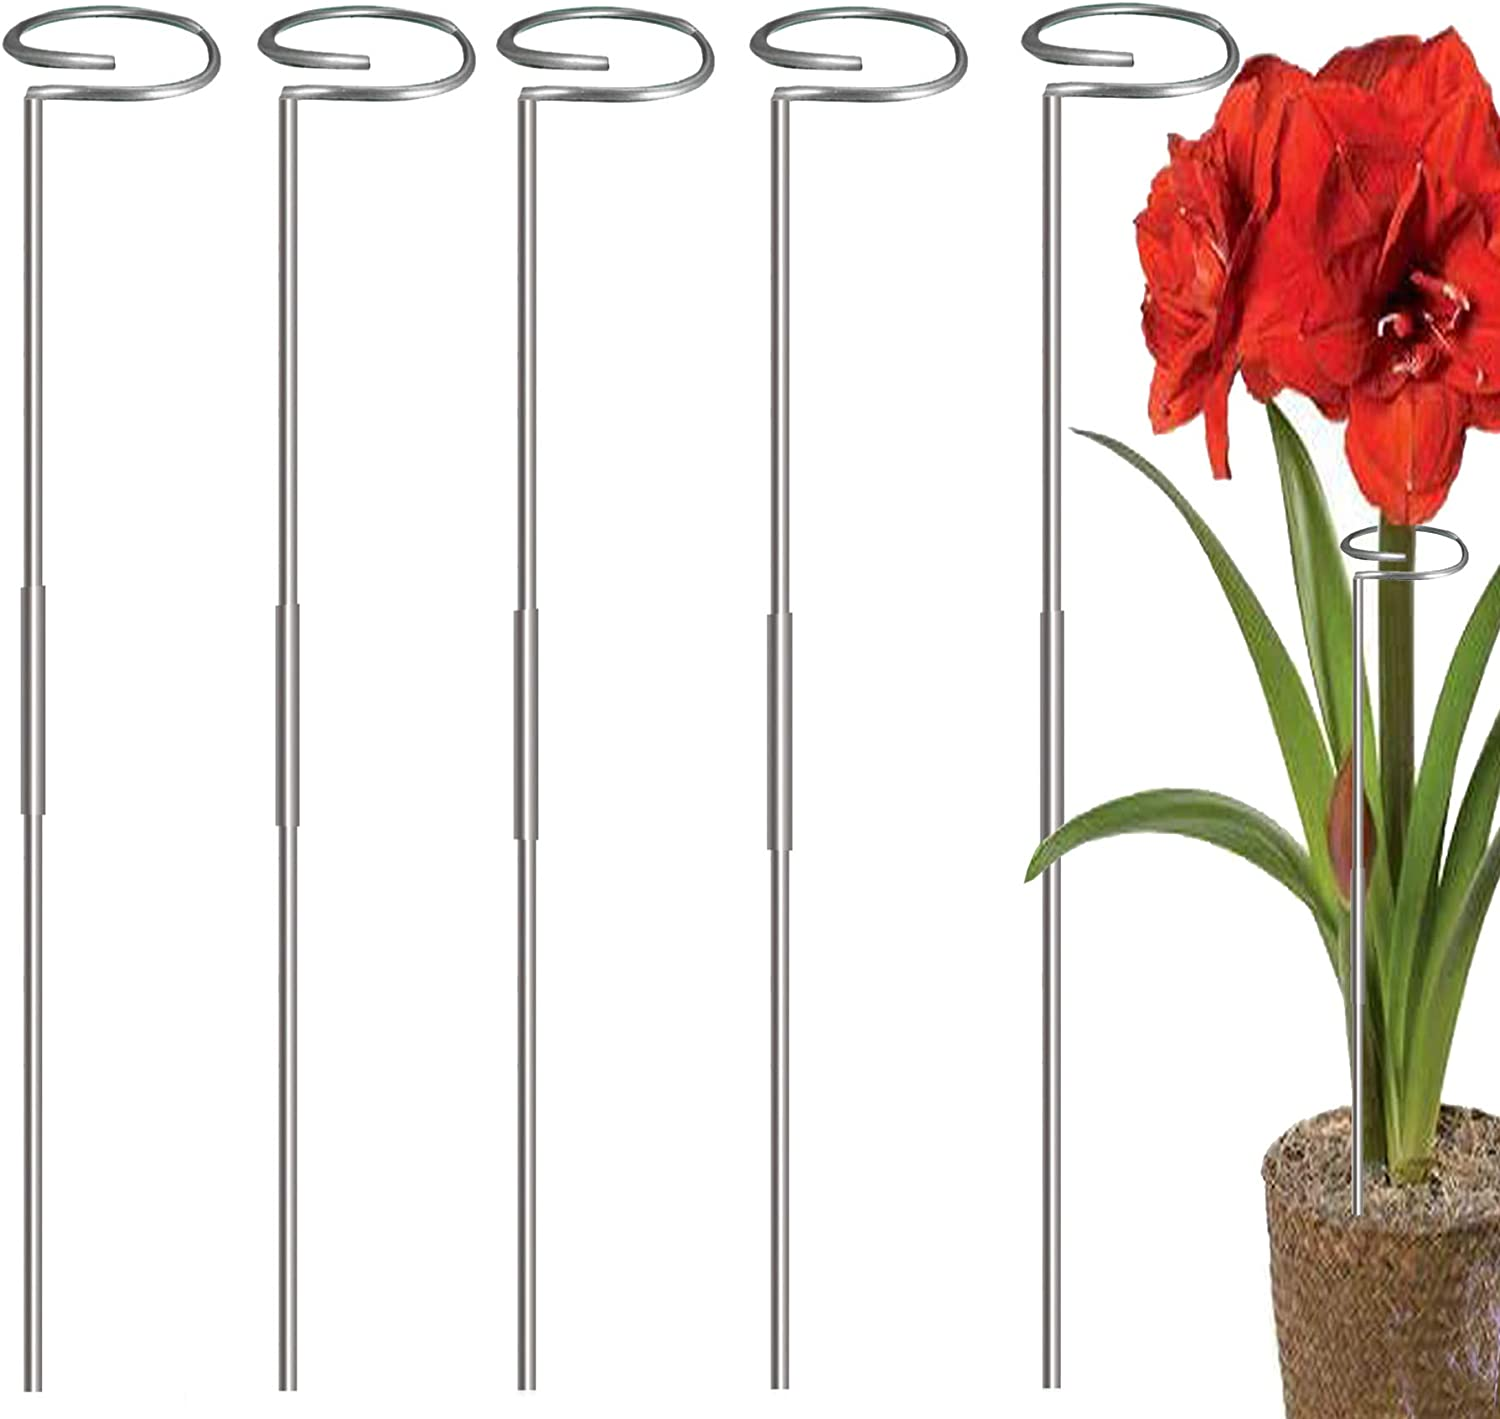 RAIKEDR 30 Inch Plant Stakes for Flowers - 5 Pack, Stainless Steel Garden Tall Single Stem Support Stake Plant Cage Support Rings for Flowers Amaryllis Tomatoes Peony Lily Rose Narcissus (0.84, 5)